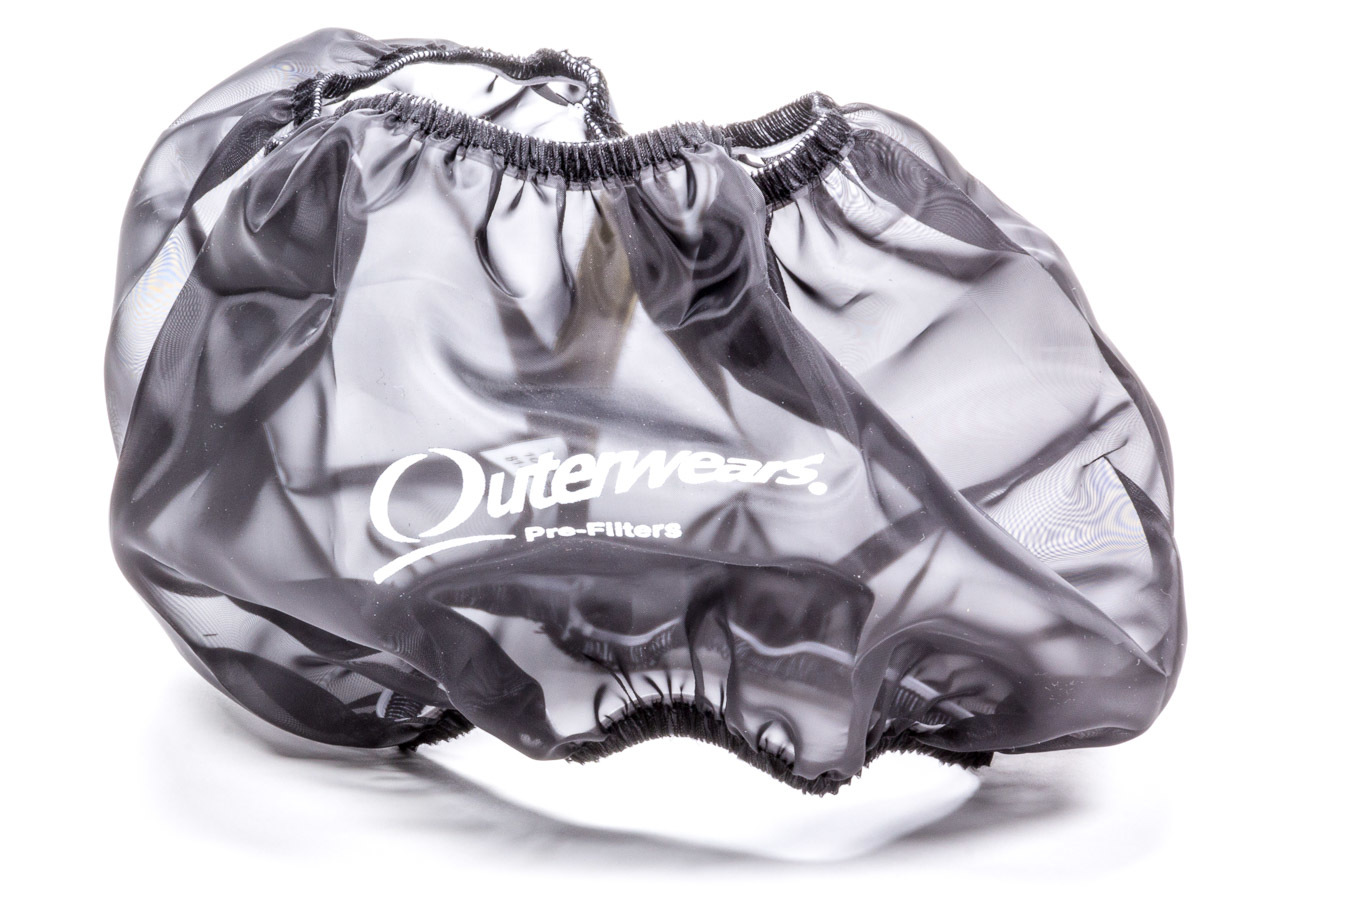 Outerwears 10-1238-01 Air Filter Wrap, Pre Filter, 9 in OD, 5 in Tall, Polyester, Black, Each